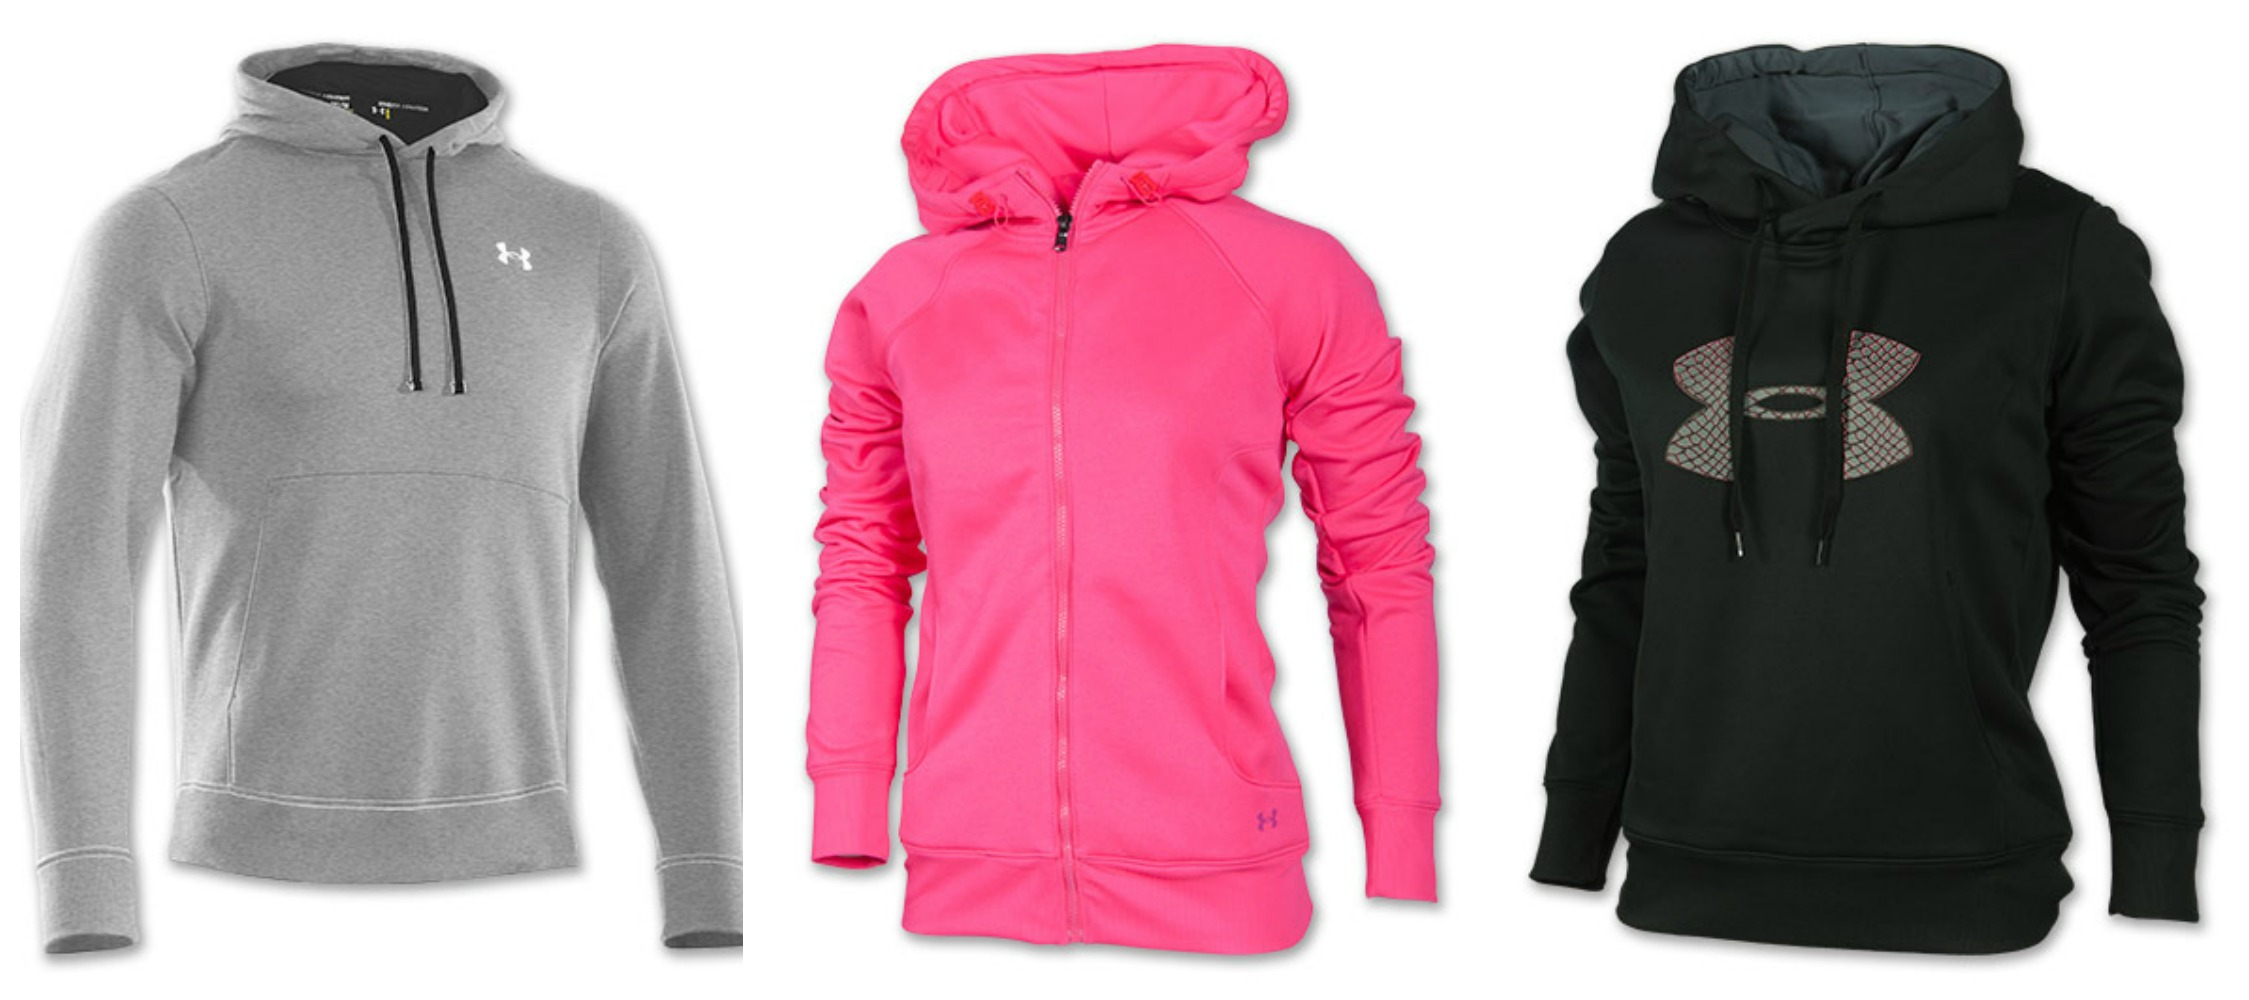 Costco Mattress Coupon Under Armour Men's & Women's Sweatshirts Just $19.99 (Reg. $54.99 - $ ...